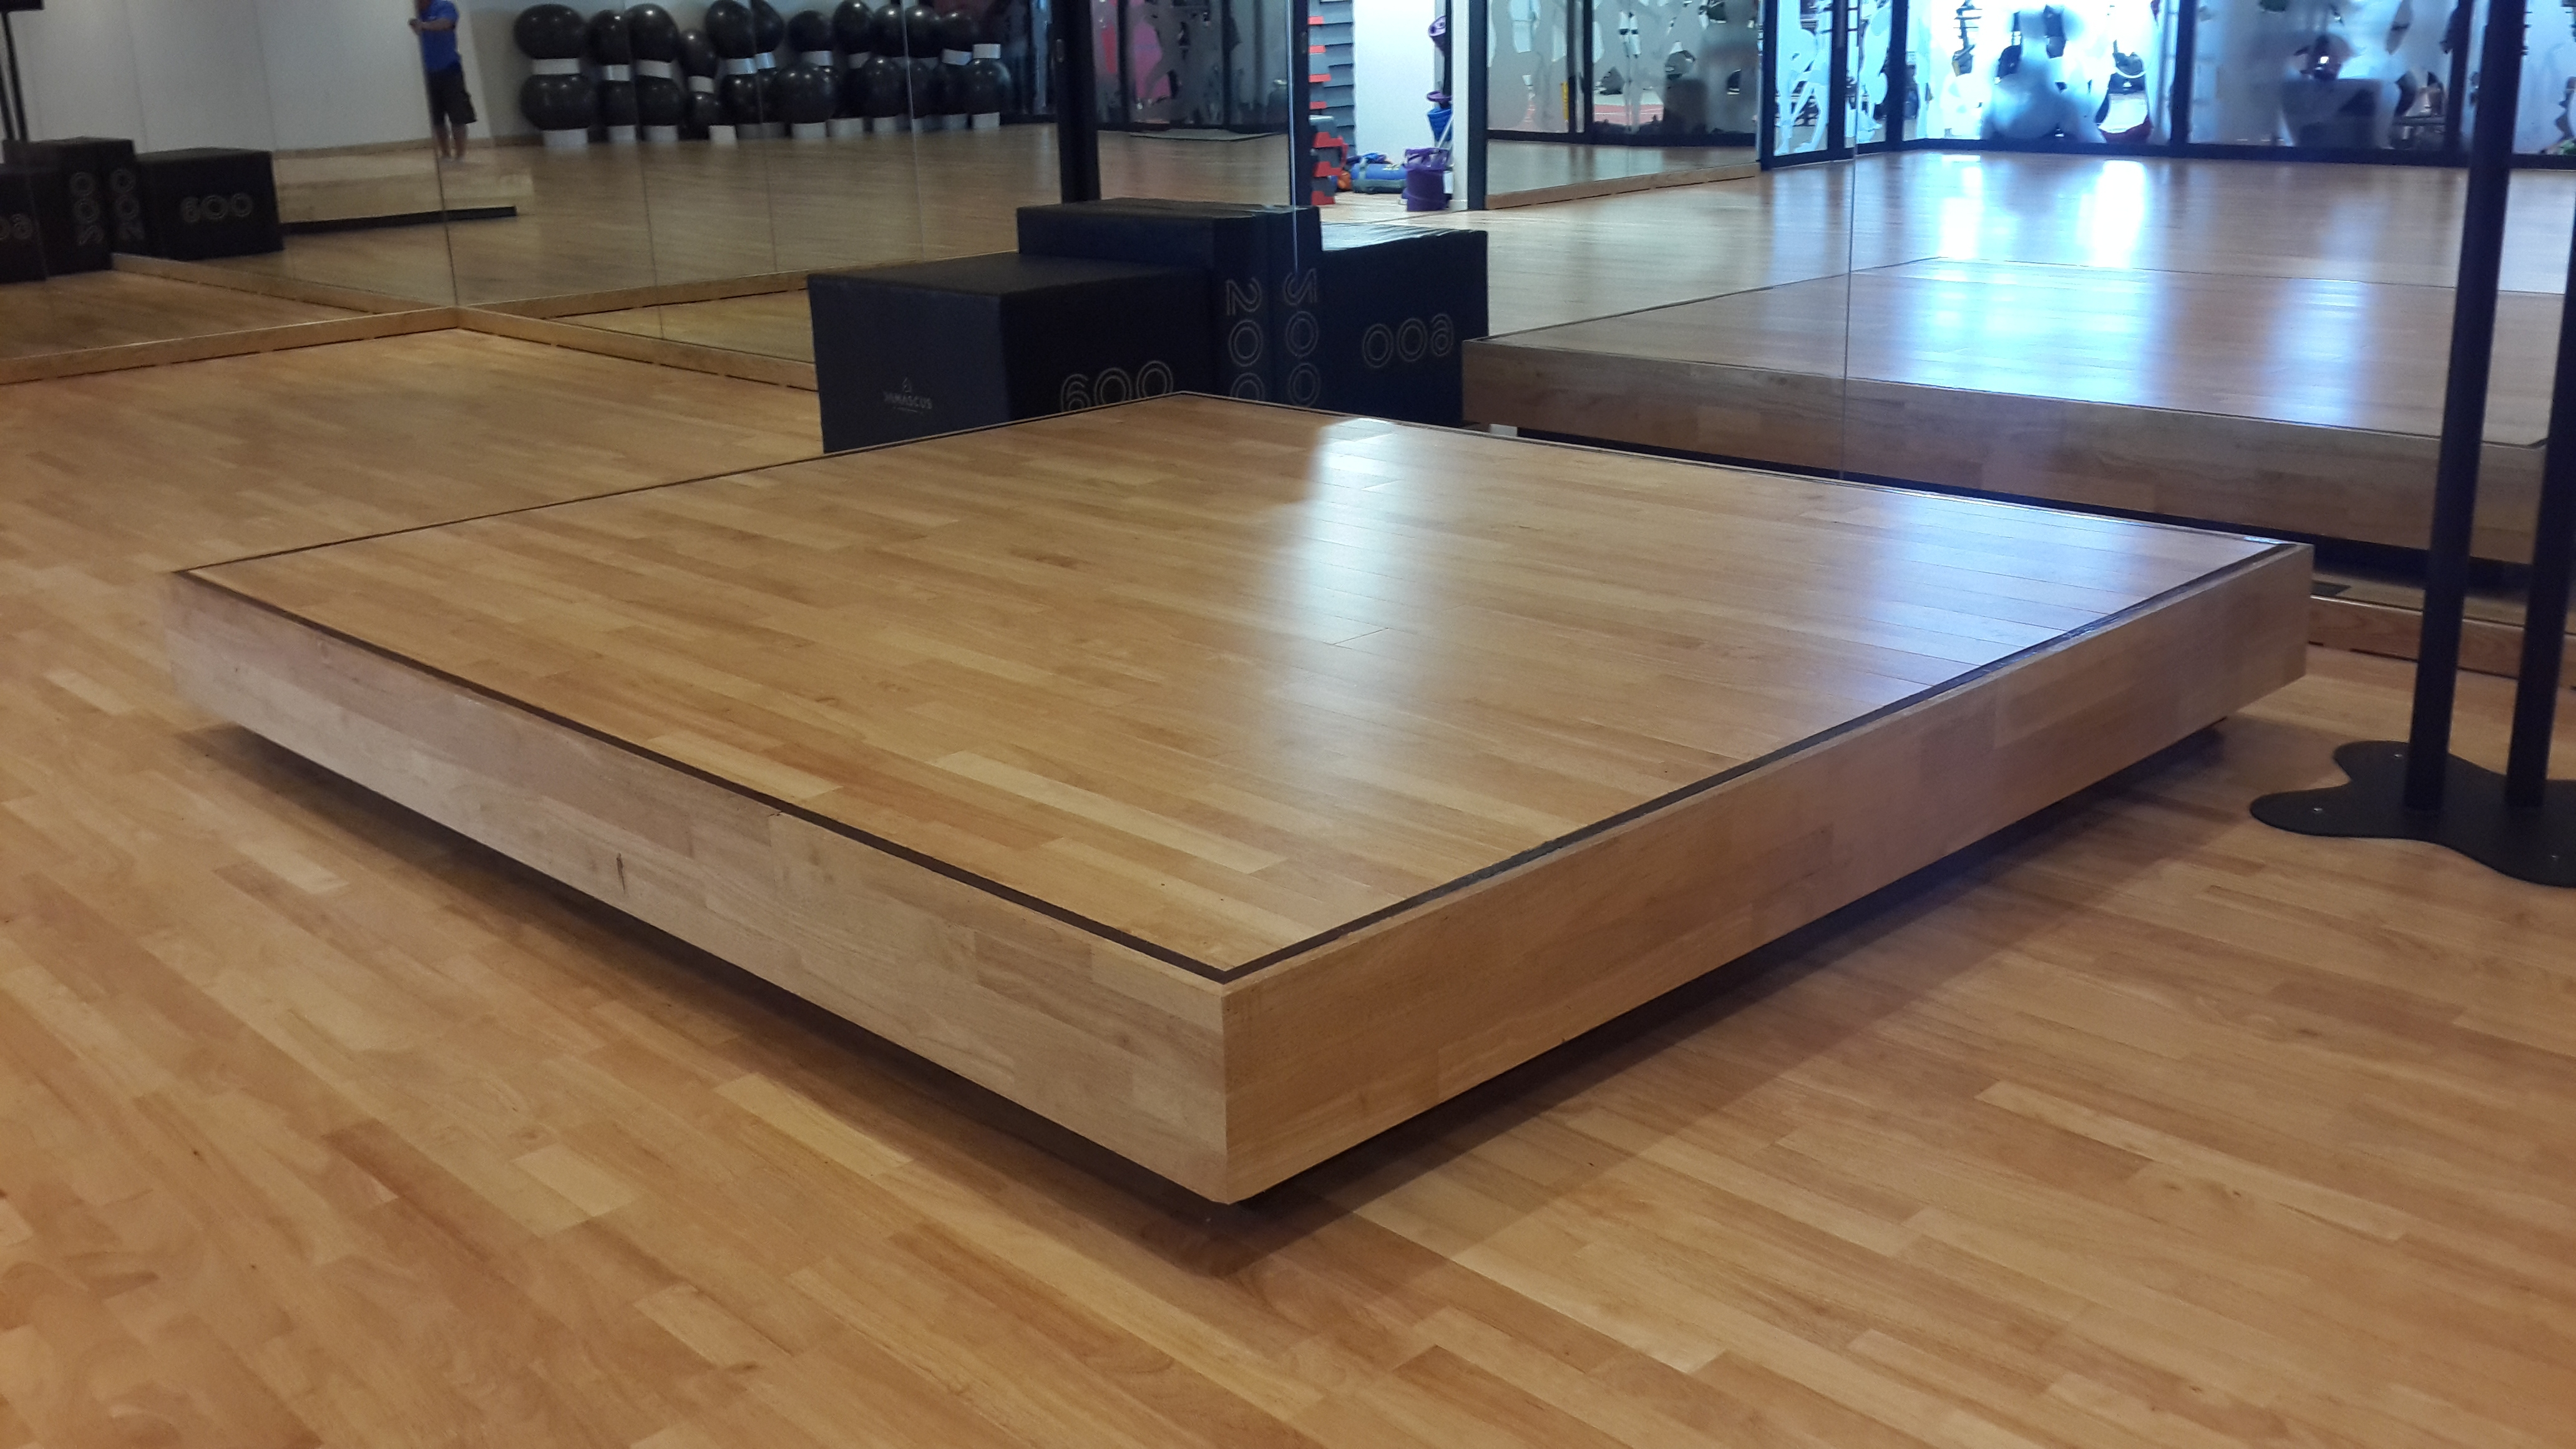 Virgin Active Key West - Studio Podium Hevea (1)